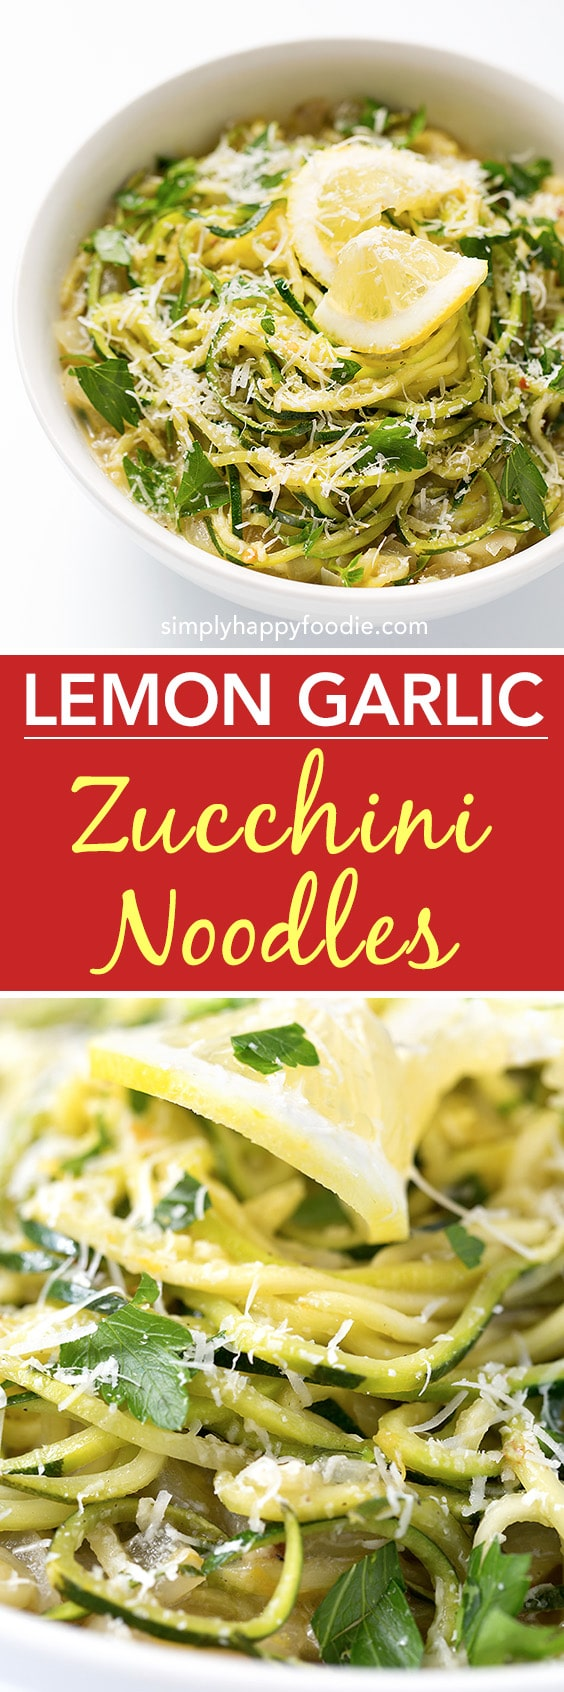 Lemon Garlic Zucchini Noodles or Zoodles, are healthy and delicious, and easy to make! simplyhappyfoodie.com #zucchininoodles #zoodles